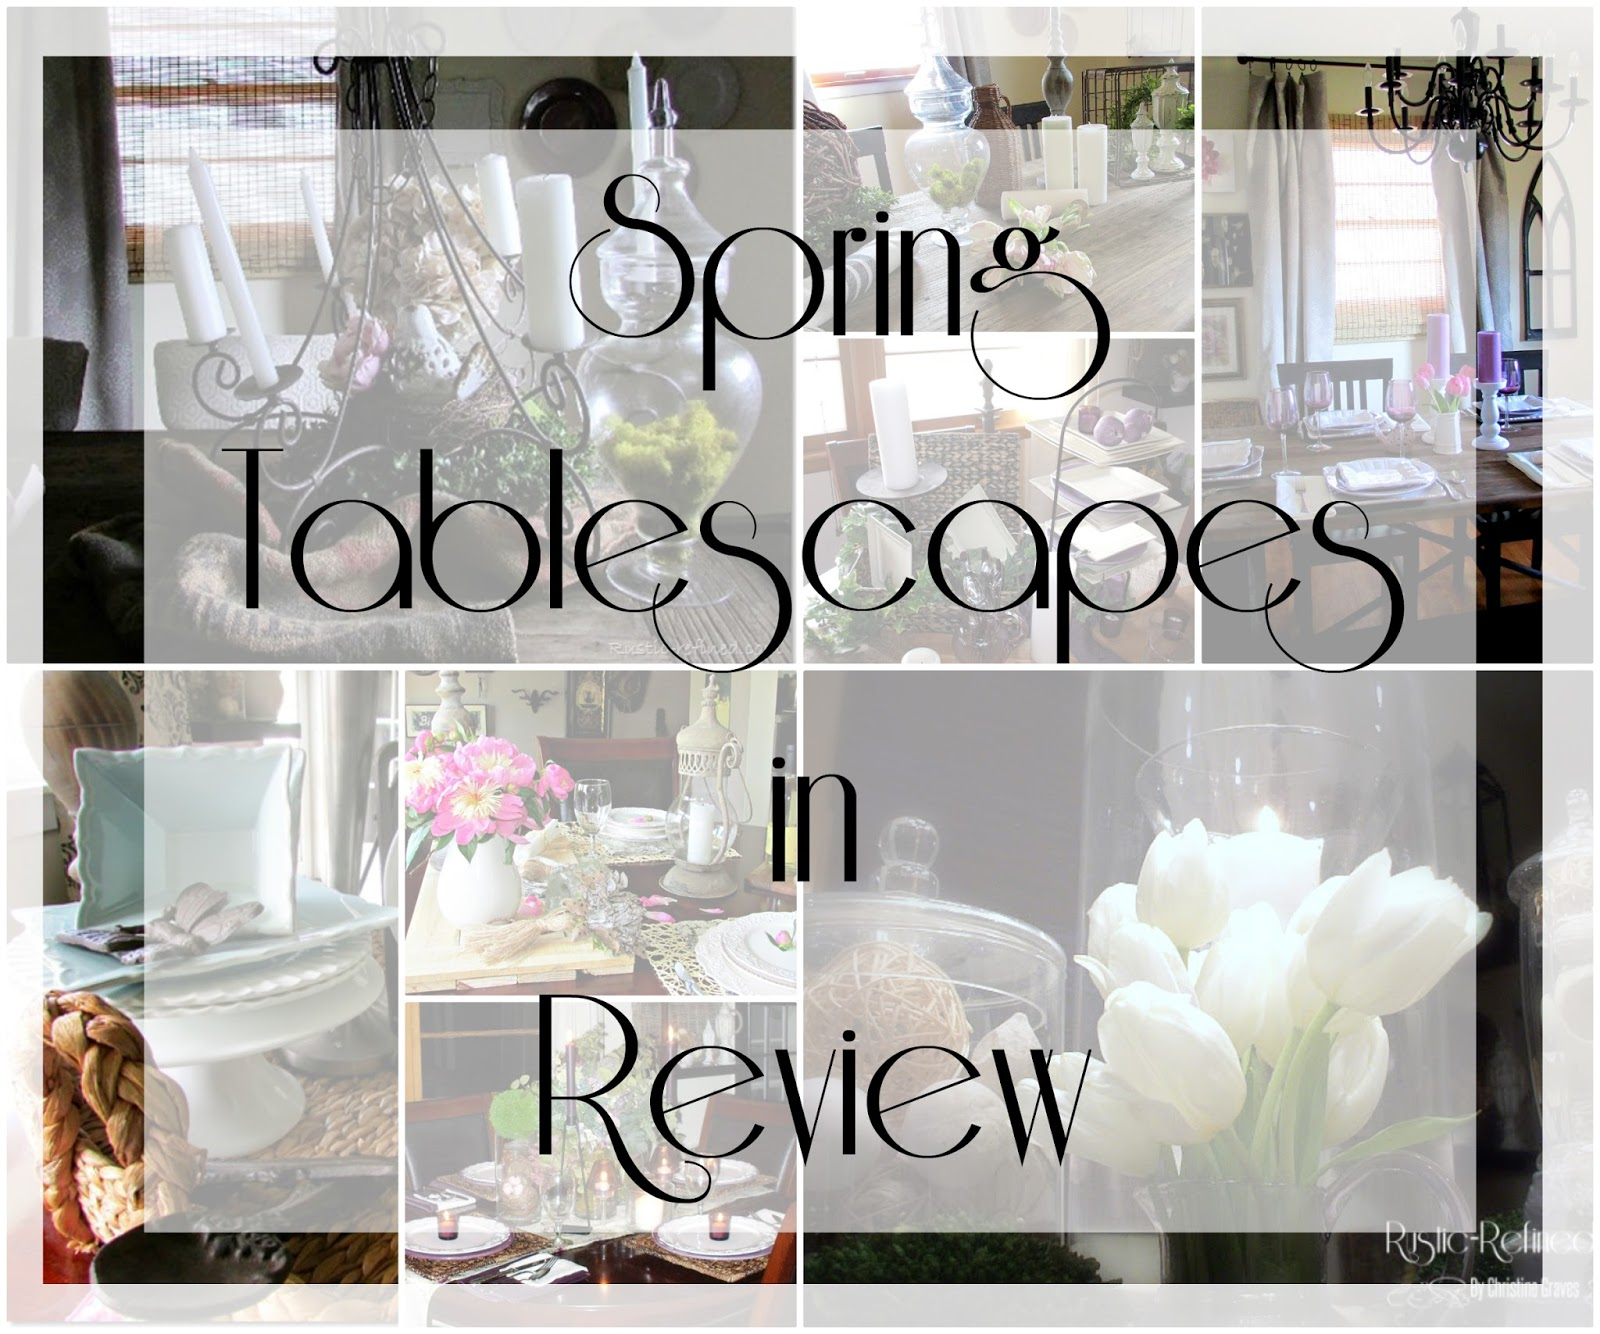 spring tablescapes in review - 15 different table ideas - rustic